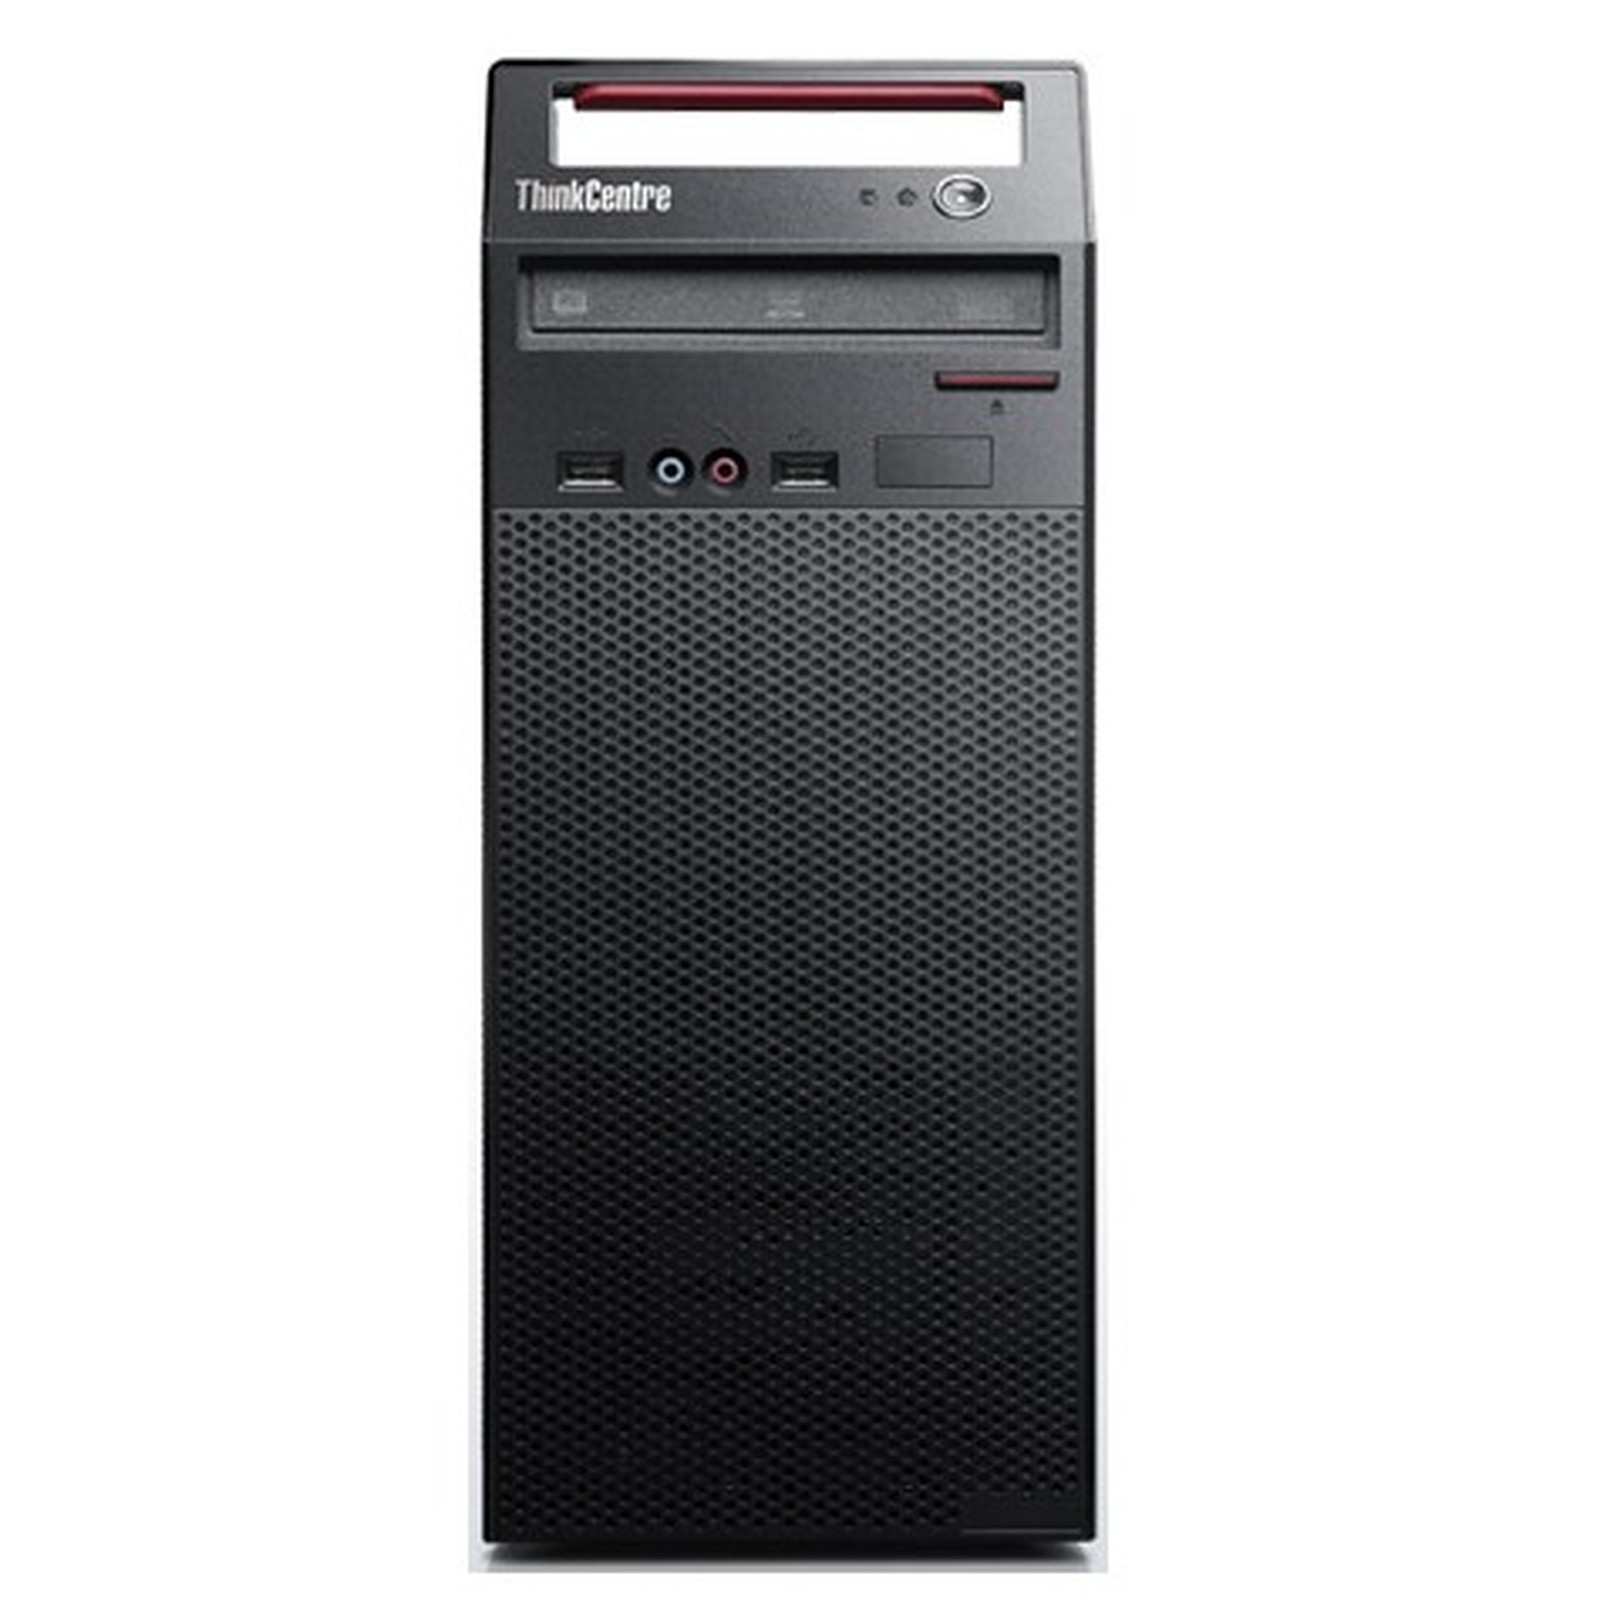 Lenovo ThinkCenter A70 Intel Pentium Dual-Core E5500 2 Go 320 Go